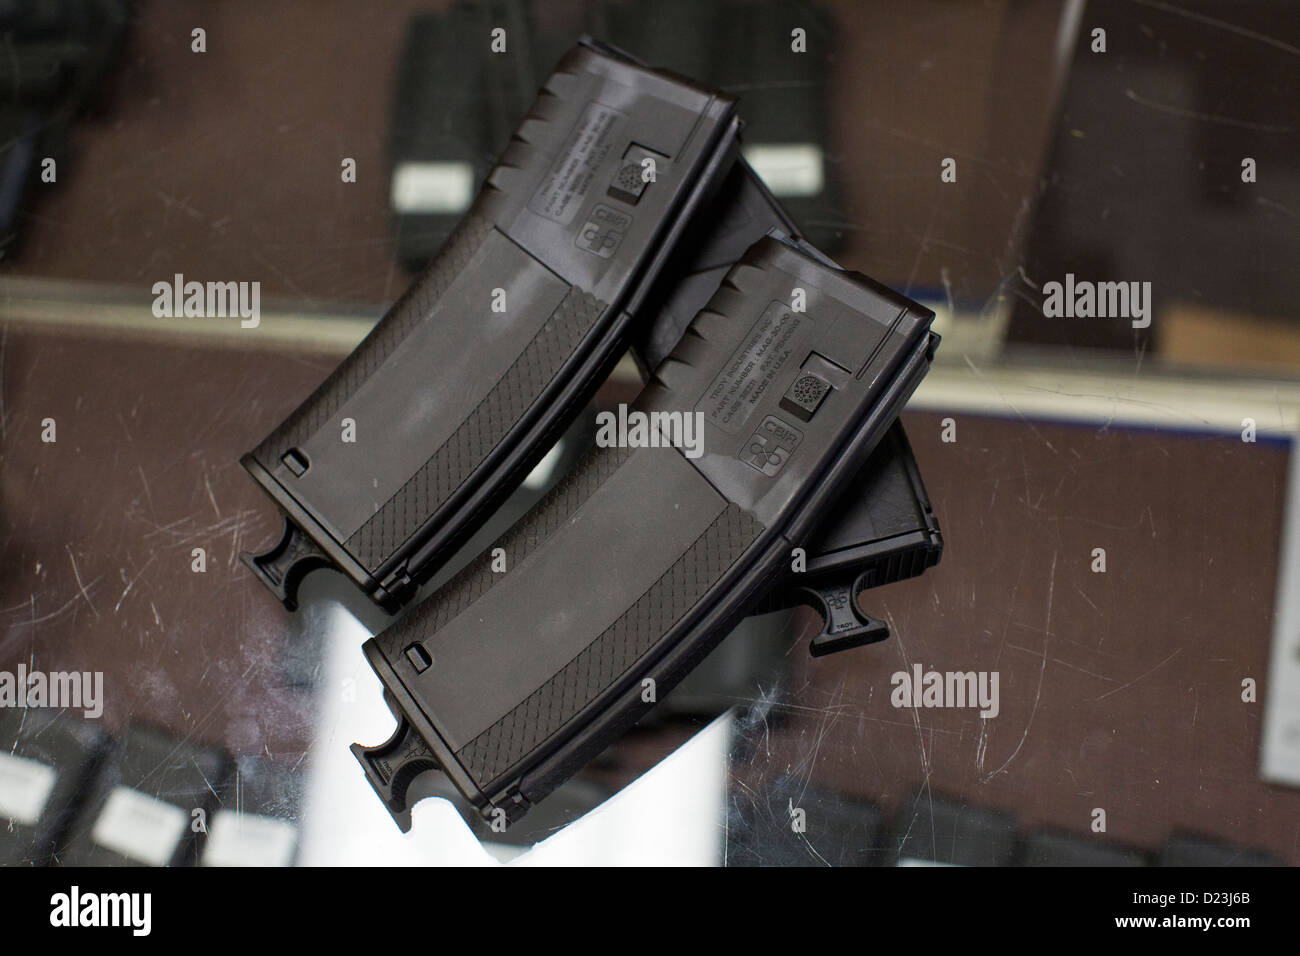 High capacity 30 round assault rifle magazines on display at a gun shop.  - Stock Image